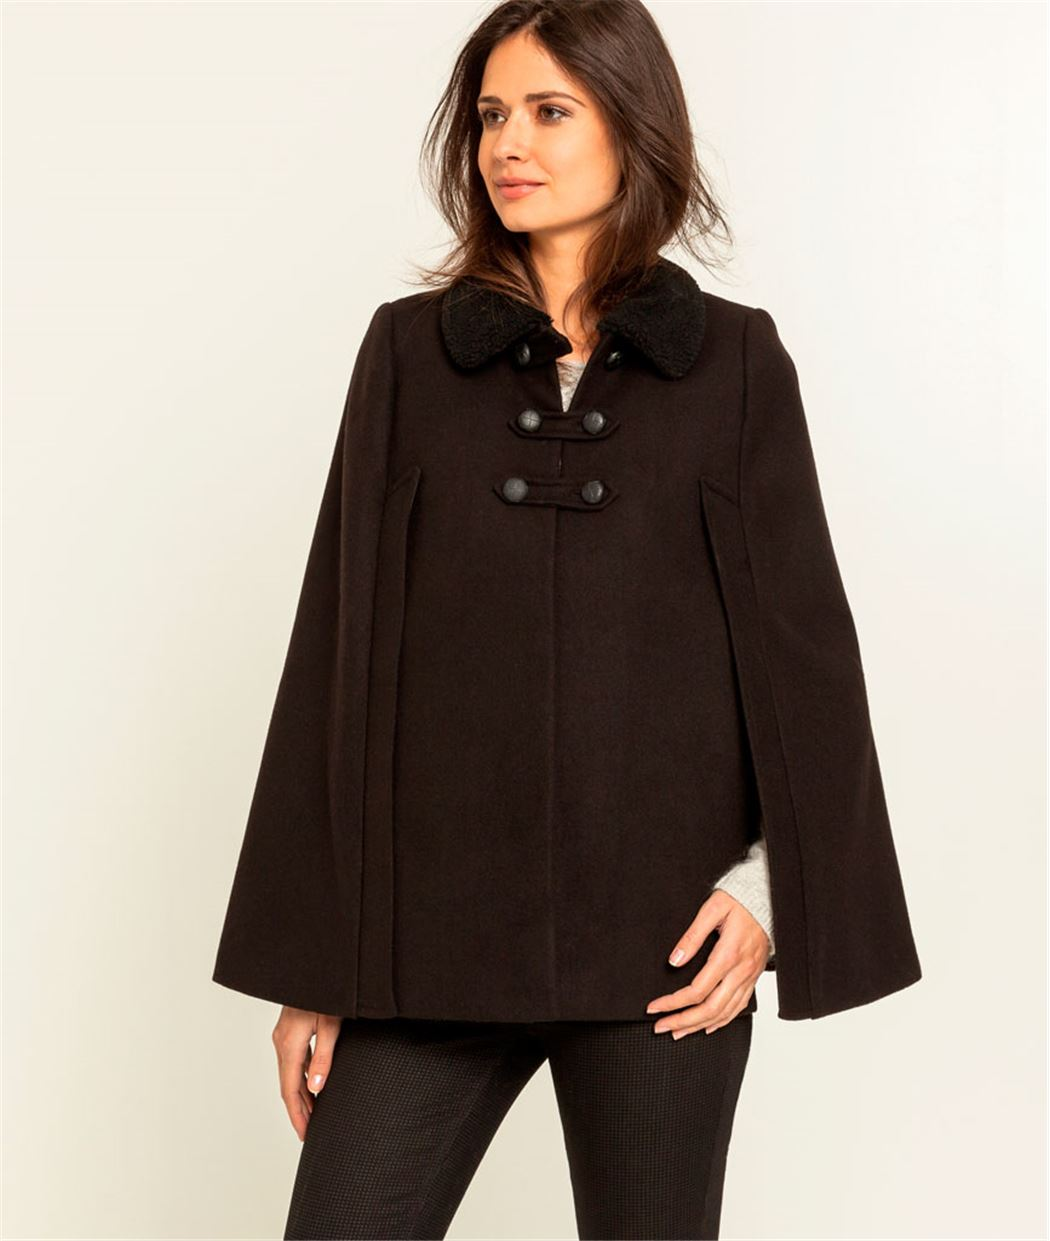 manteau femme cape avec col noir grain de malice. Black Bedroom Furniture Sets. Home Design Ideas